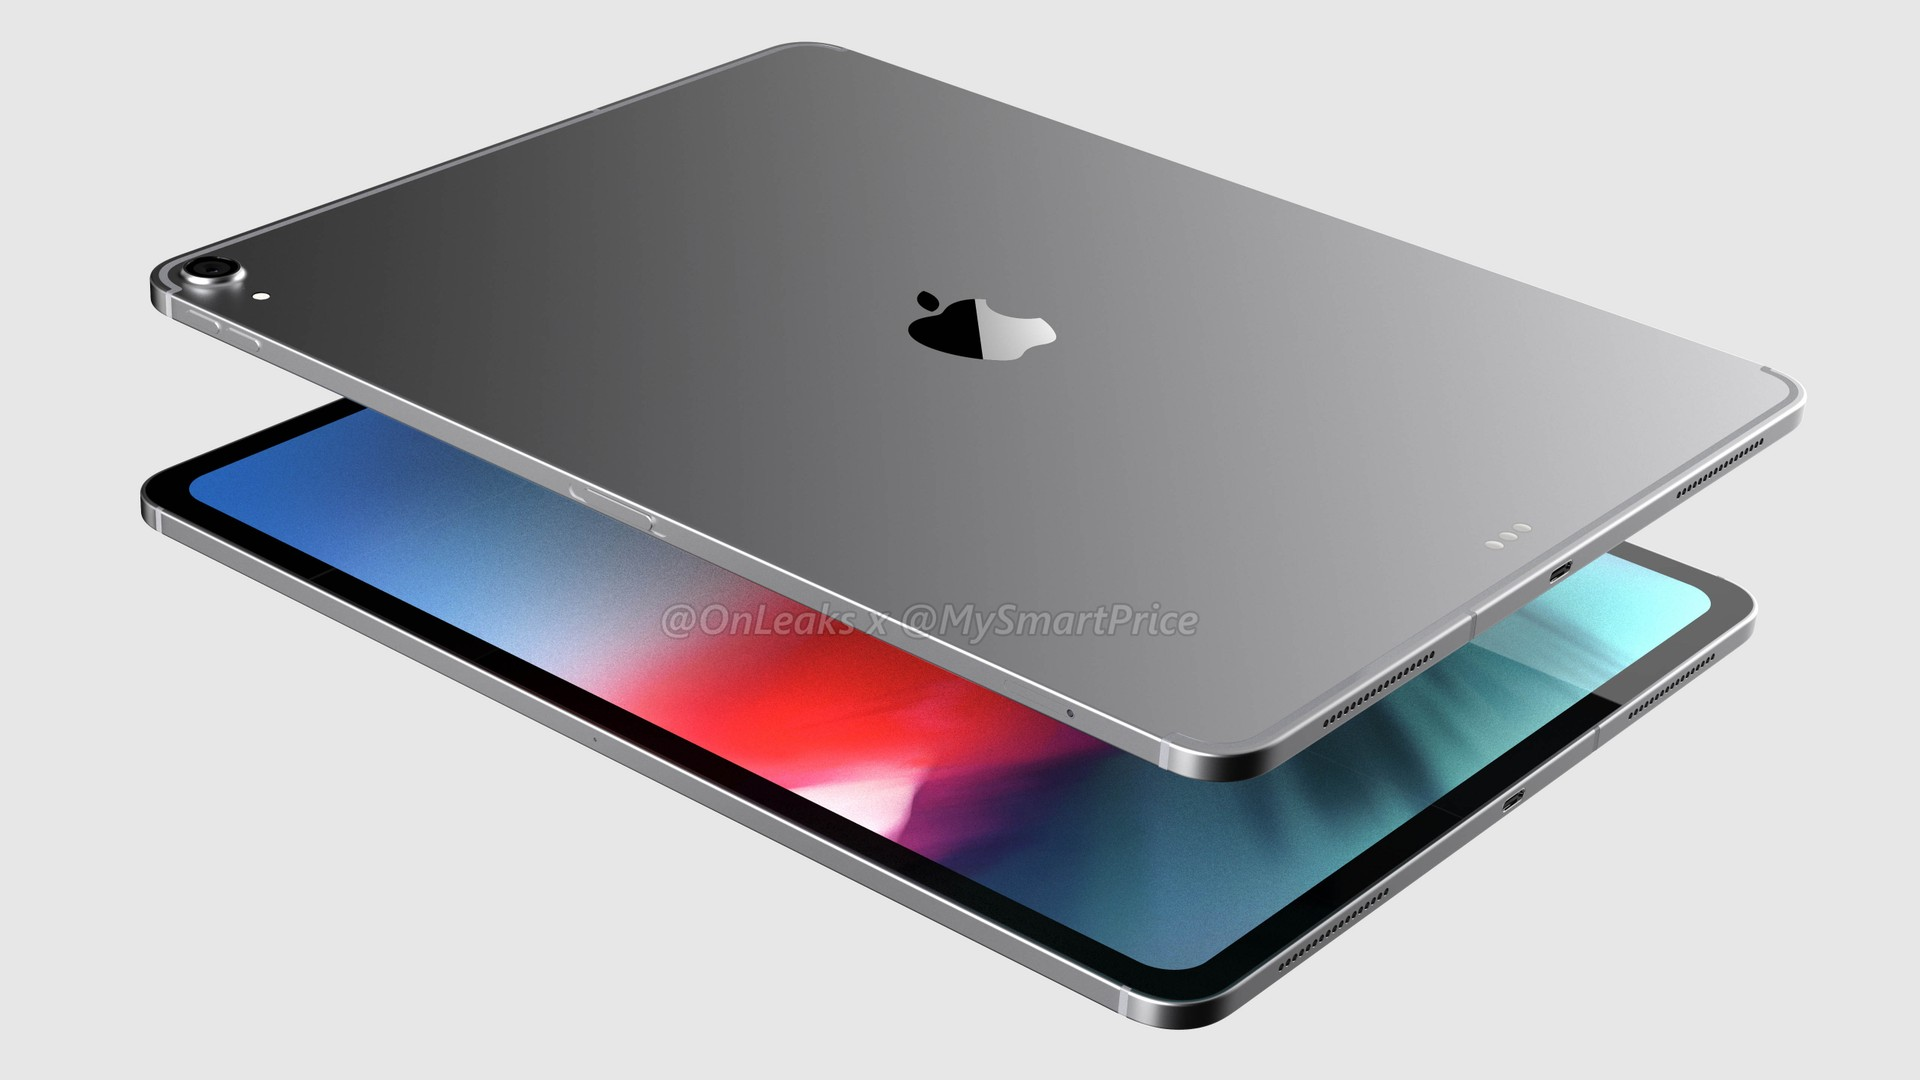 Apple iPad Pro 12.9 2018 Tablet